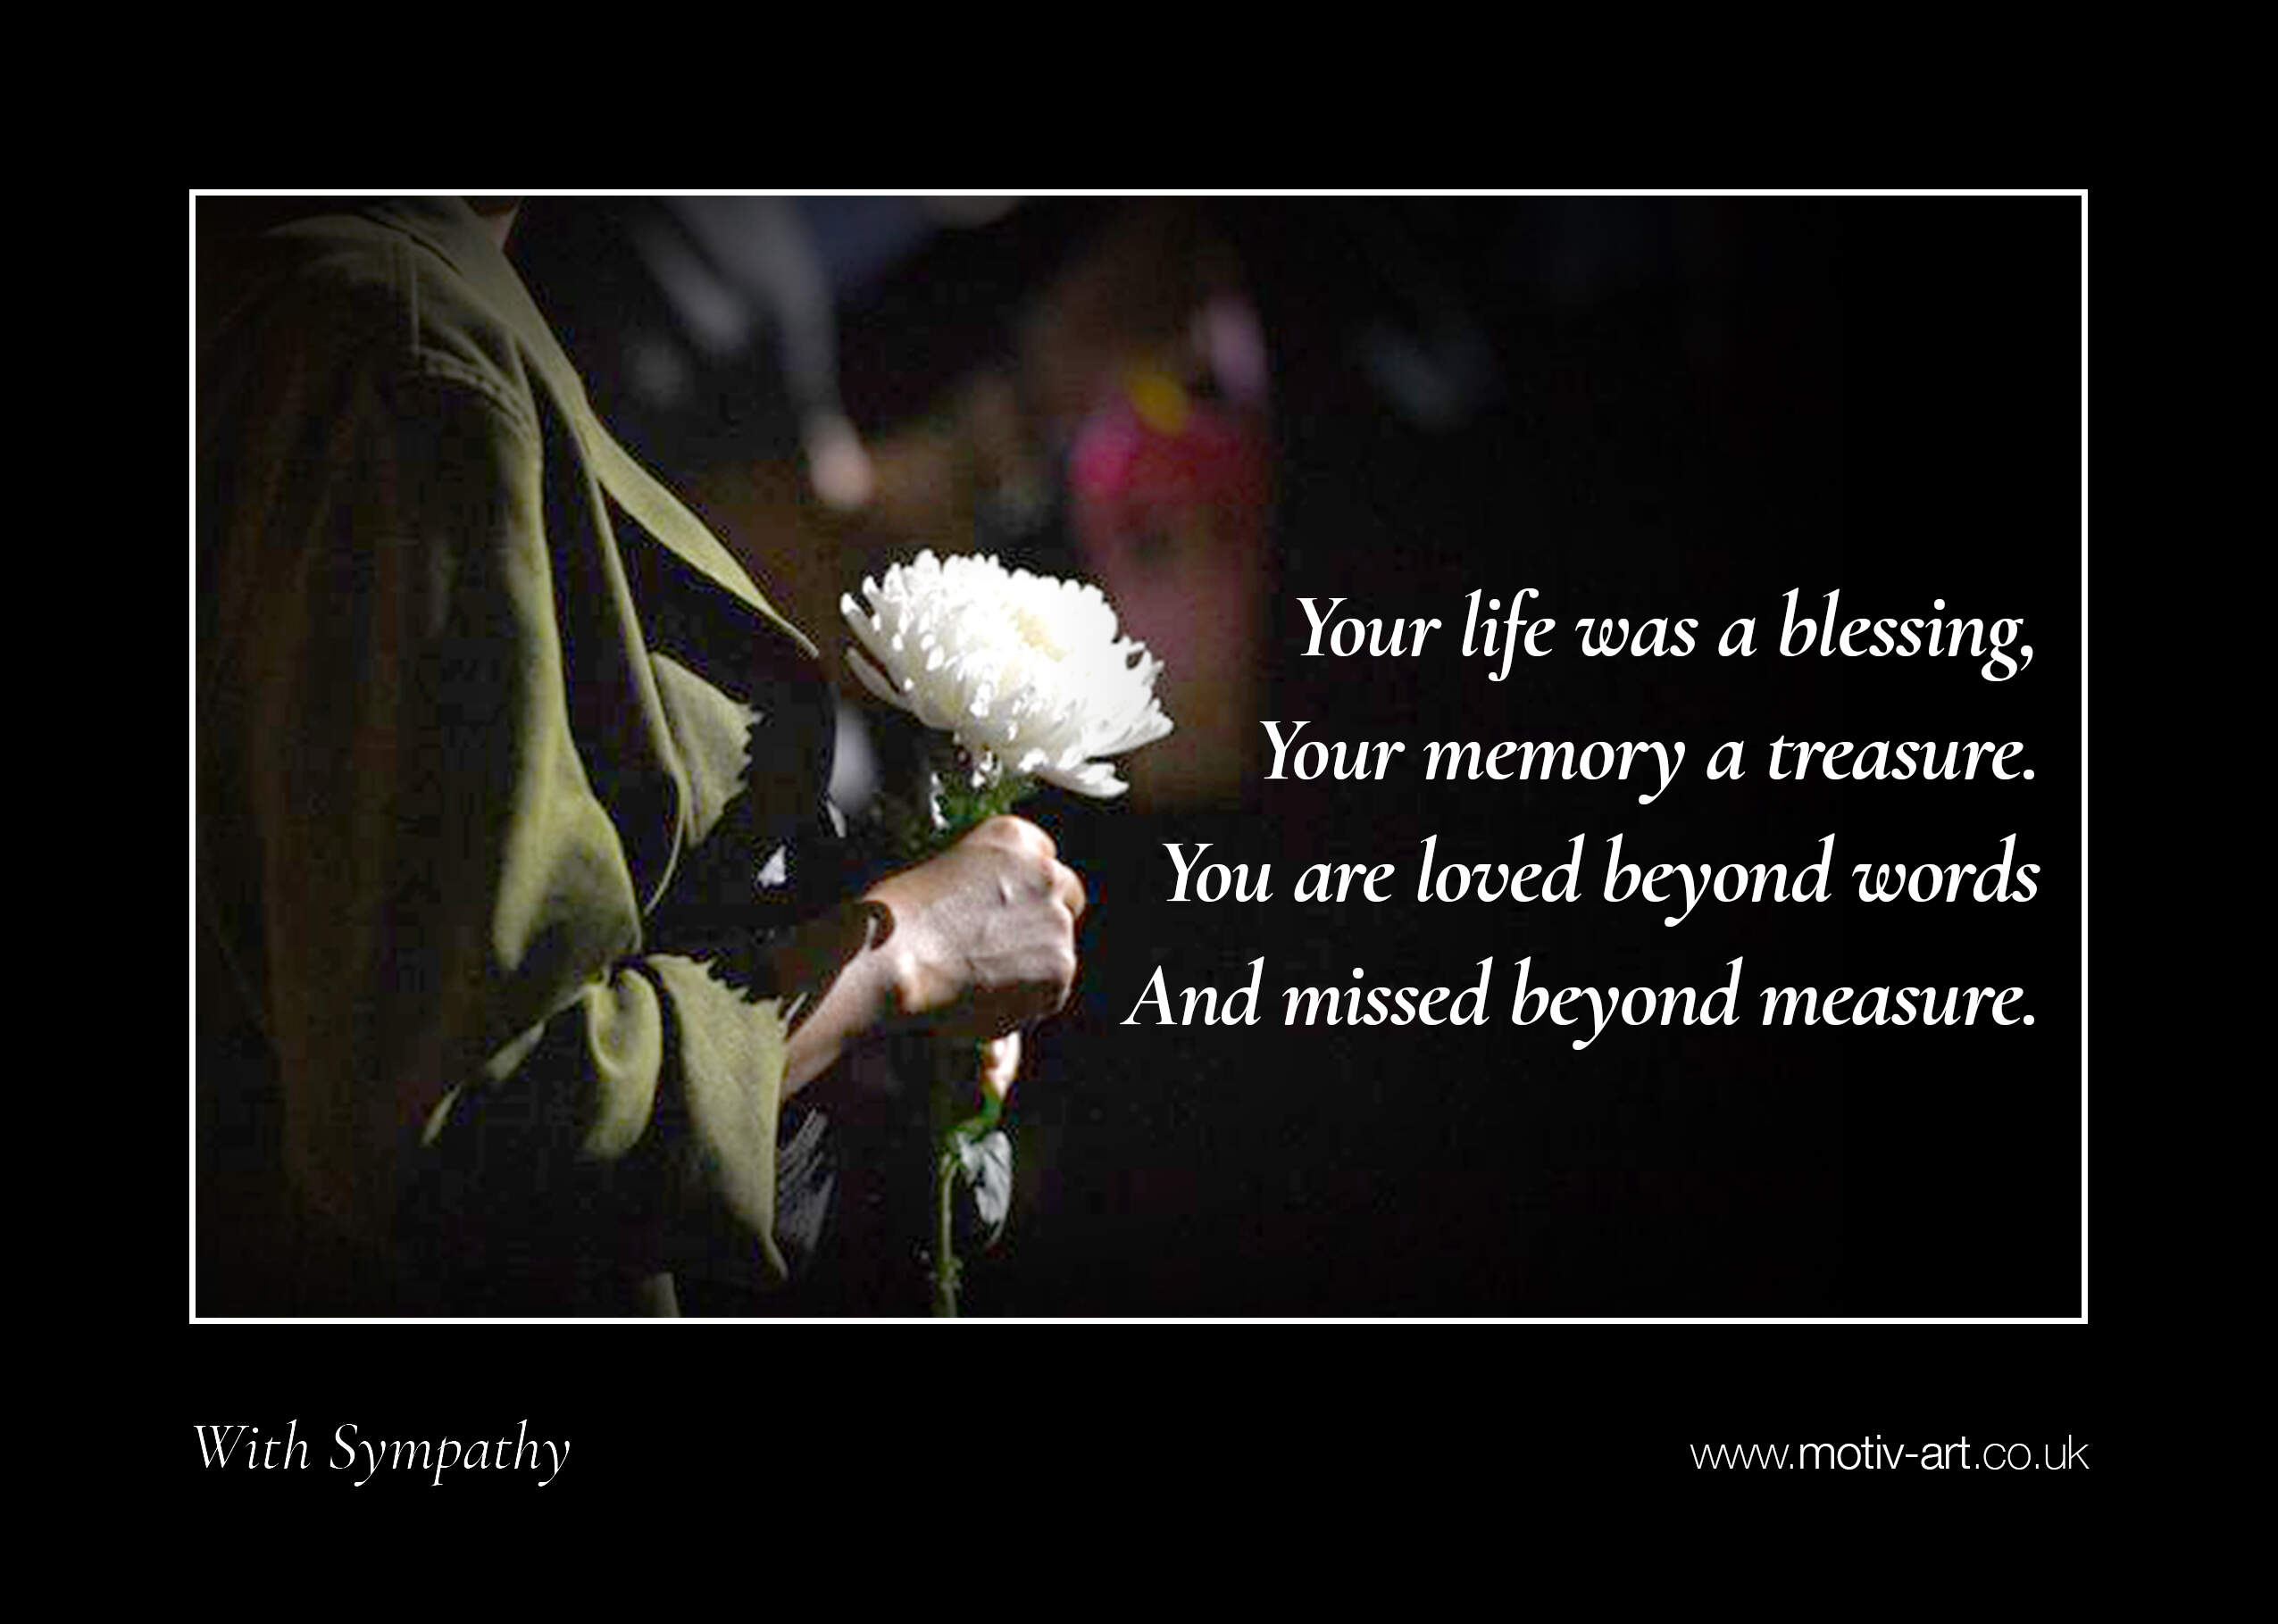 Your life was a blessing...